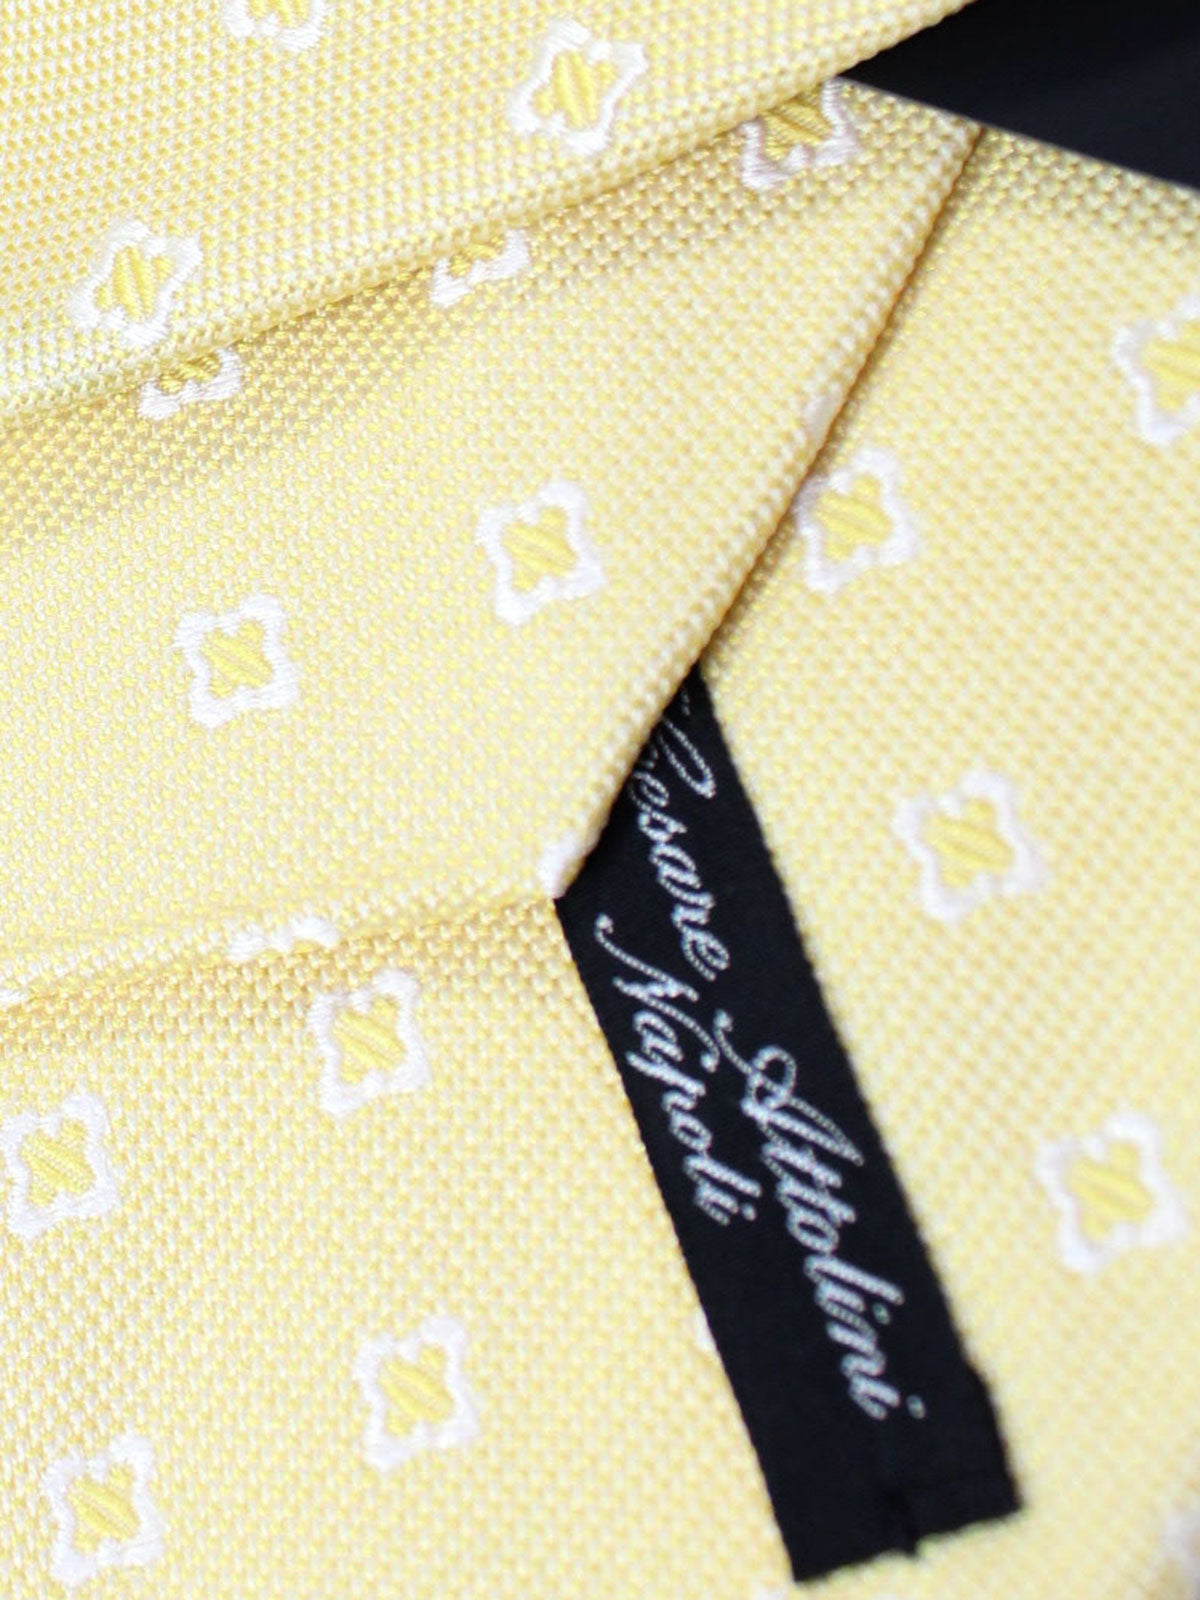 Attolini Silk Tie Yellow Geometric